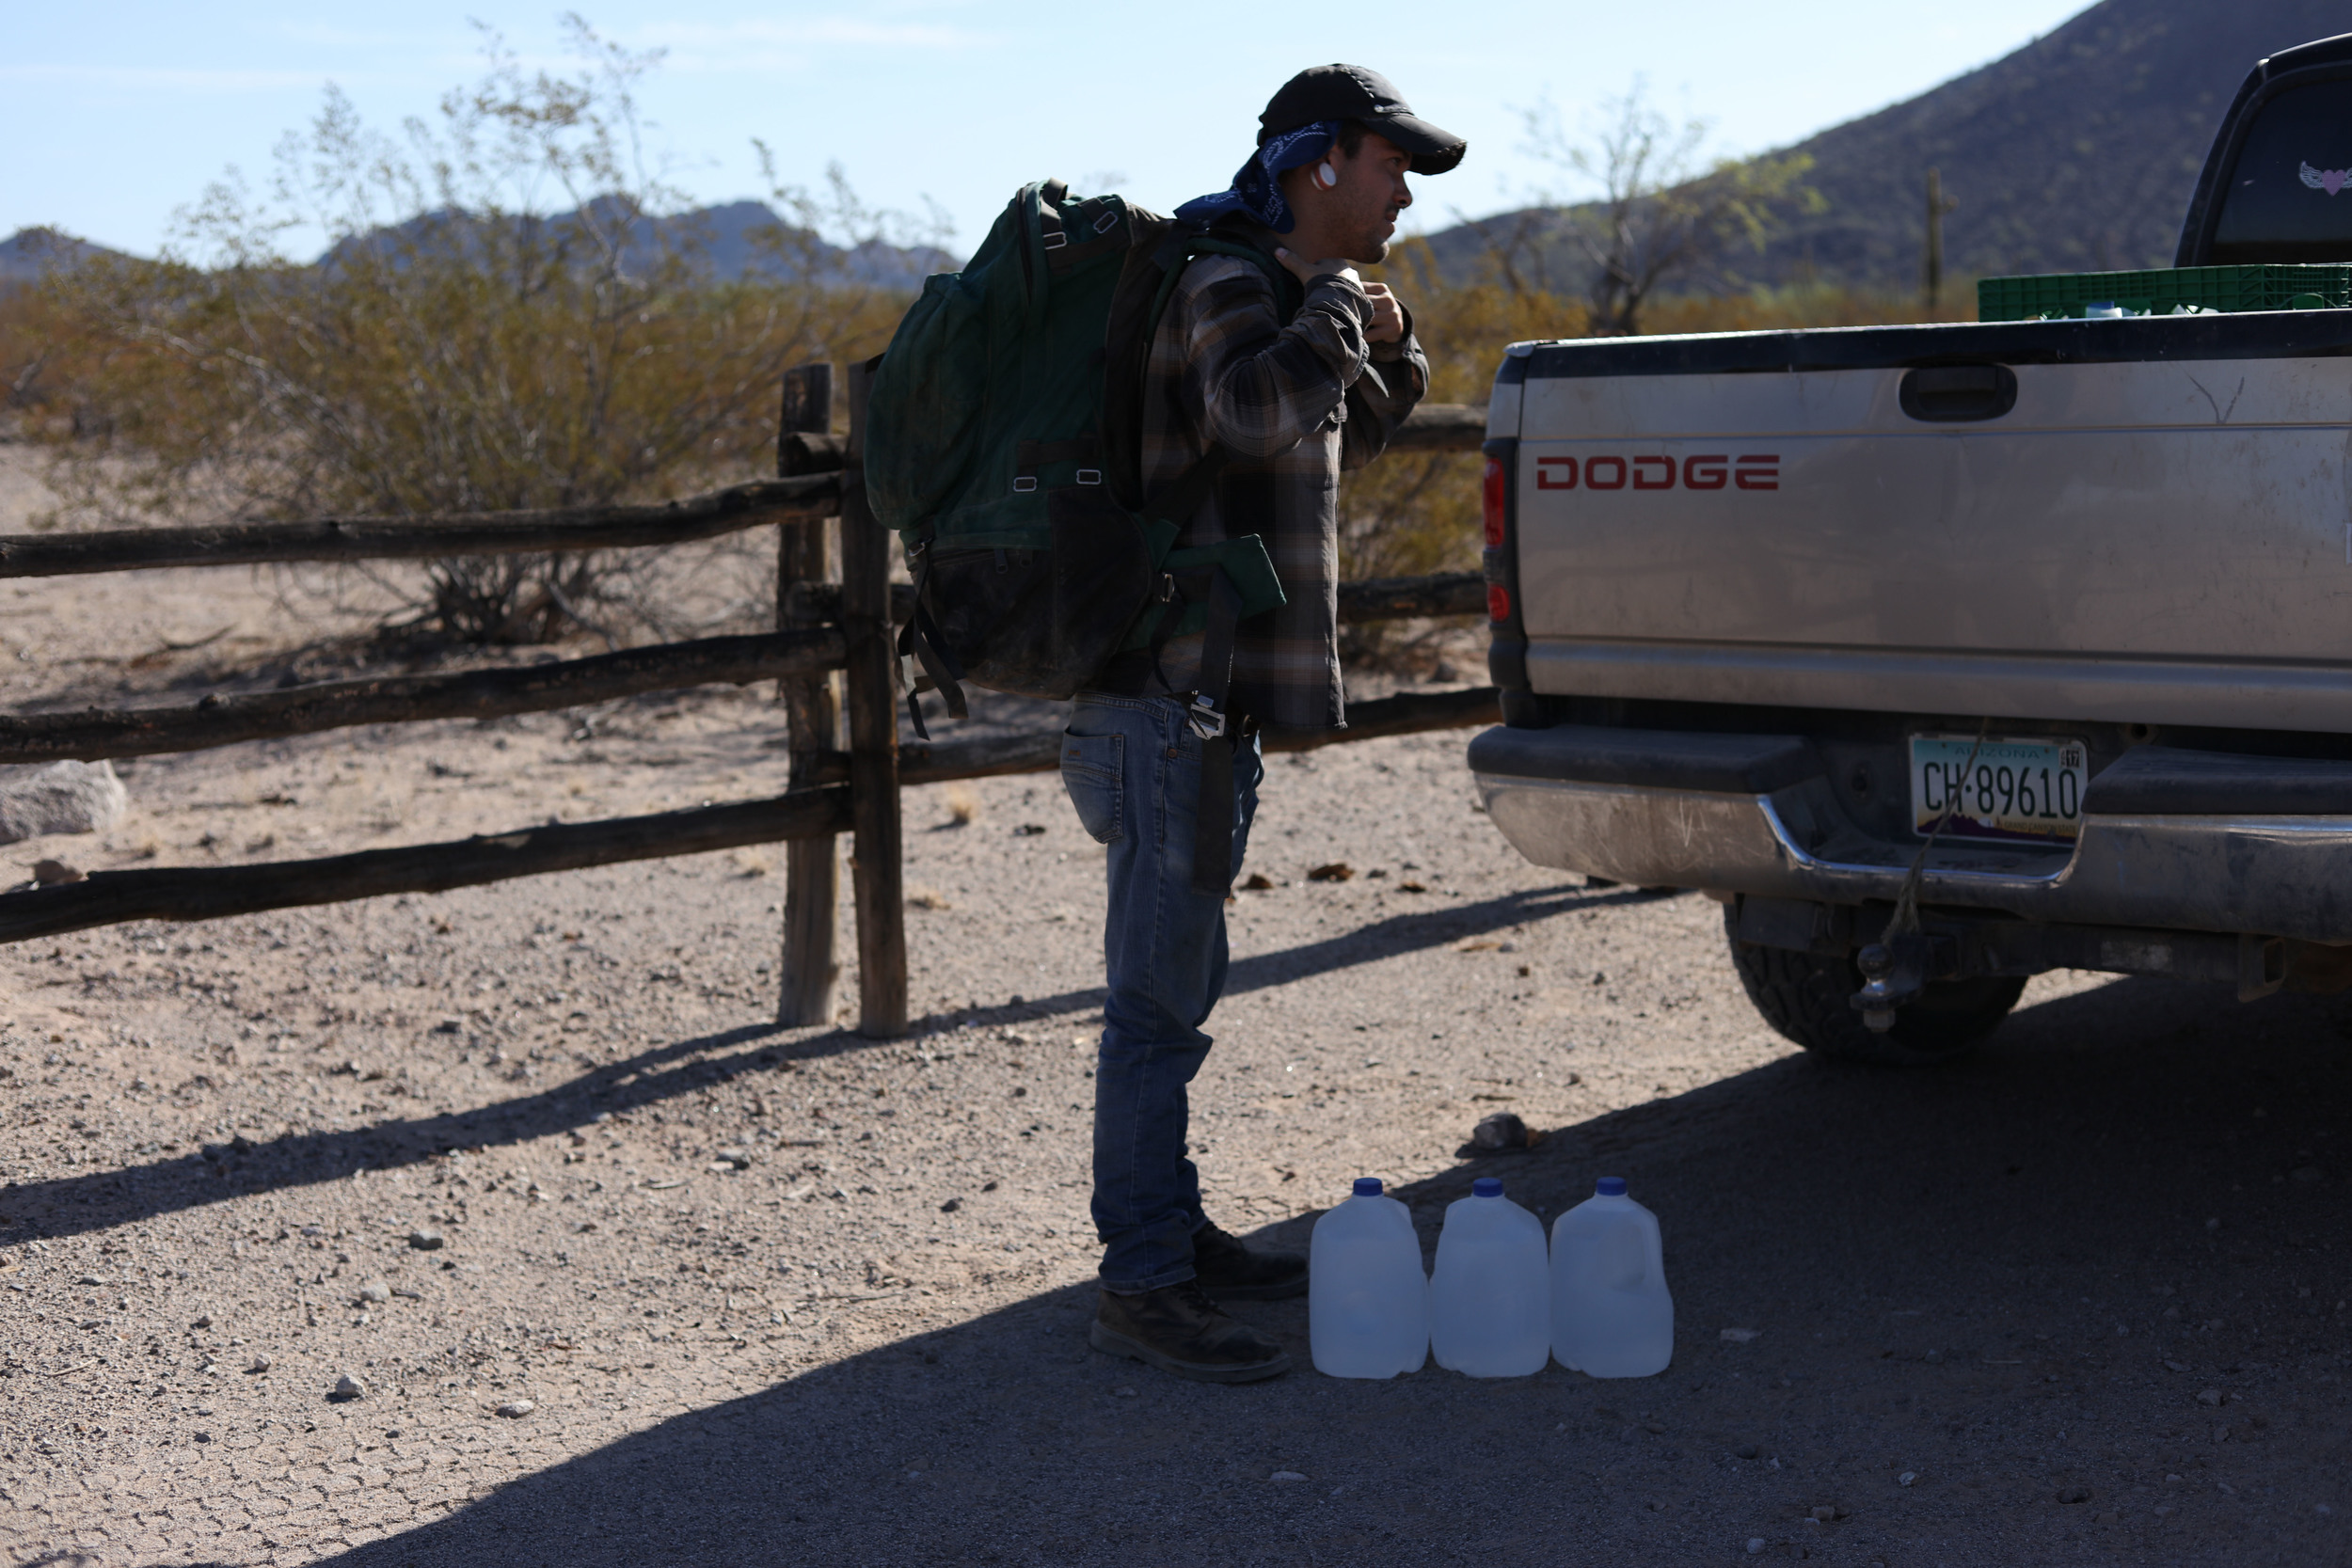 Volunteers carry 6-8 gallons of water into the desert, in addition to their own personal water. They carry in excess of 60 pounds of weight in their backpacks on any given hike. At 10am it is 106 degrees.